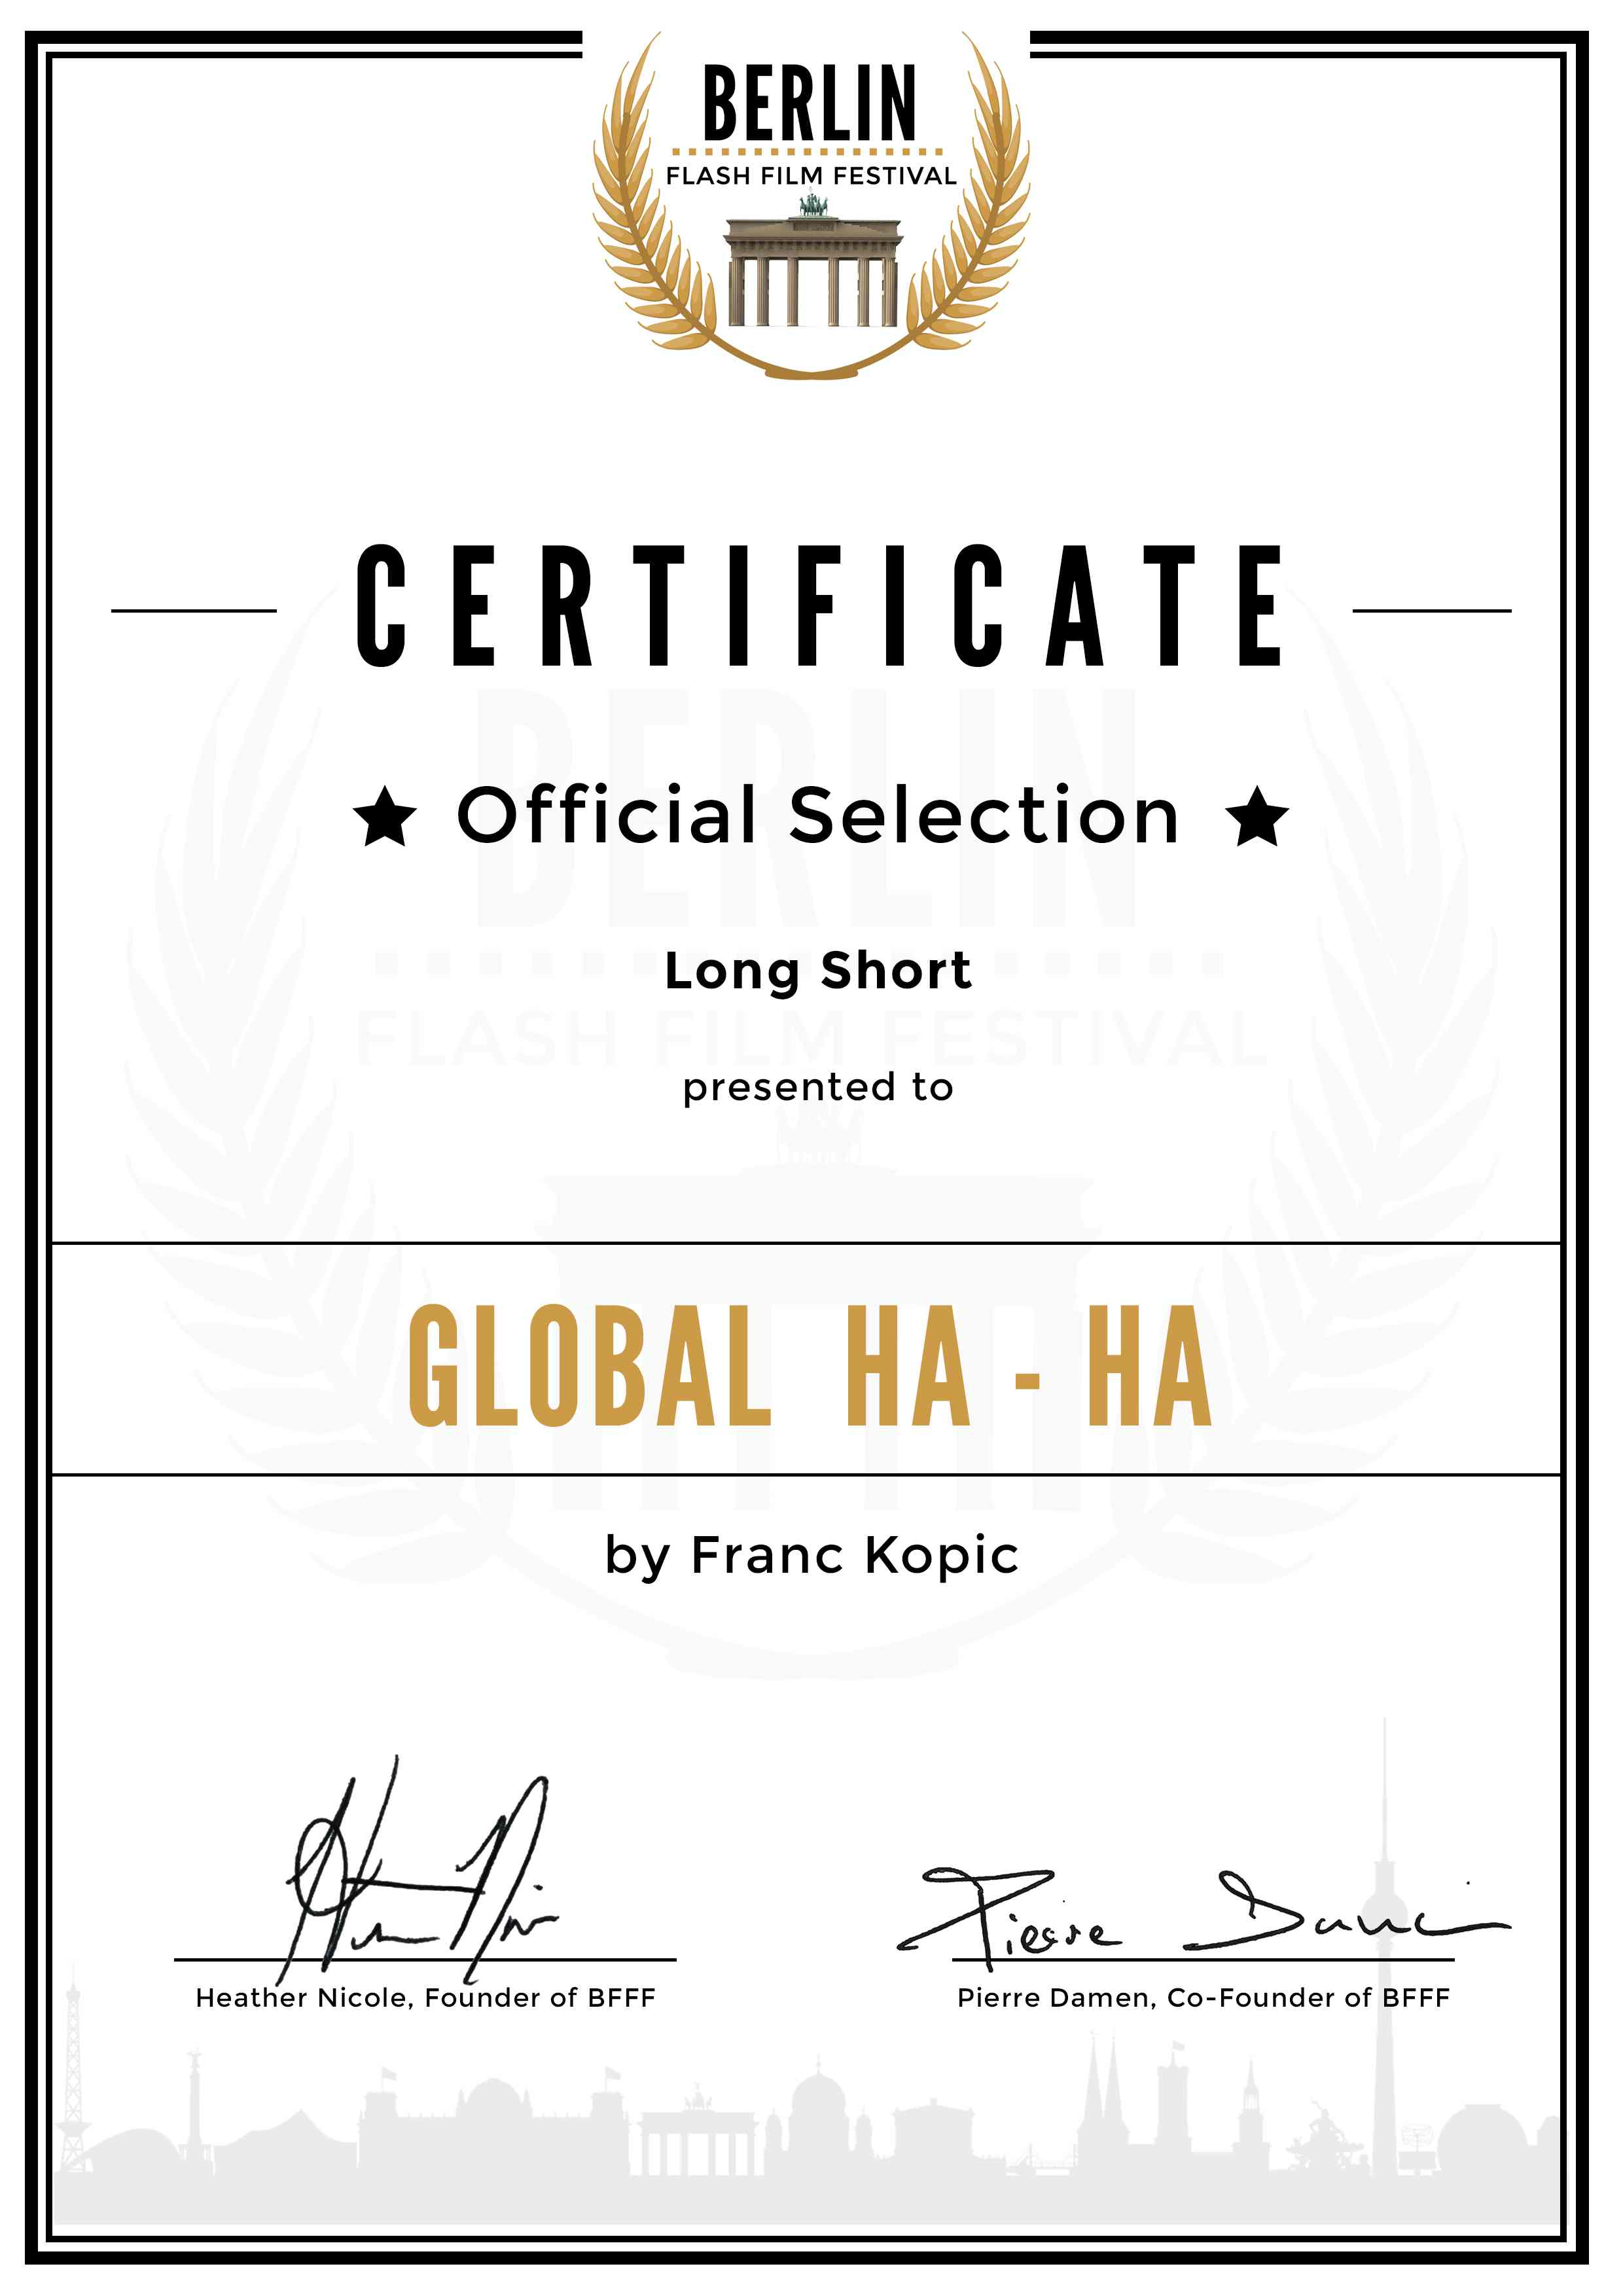 00035 Franc Kopic Official Selection Certificate DinA4